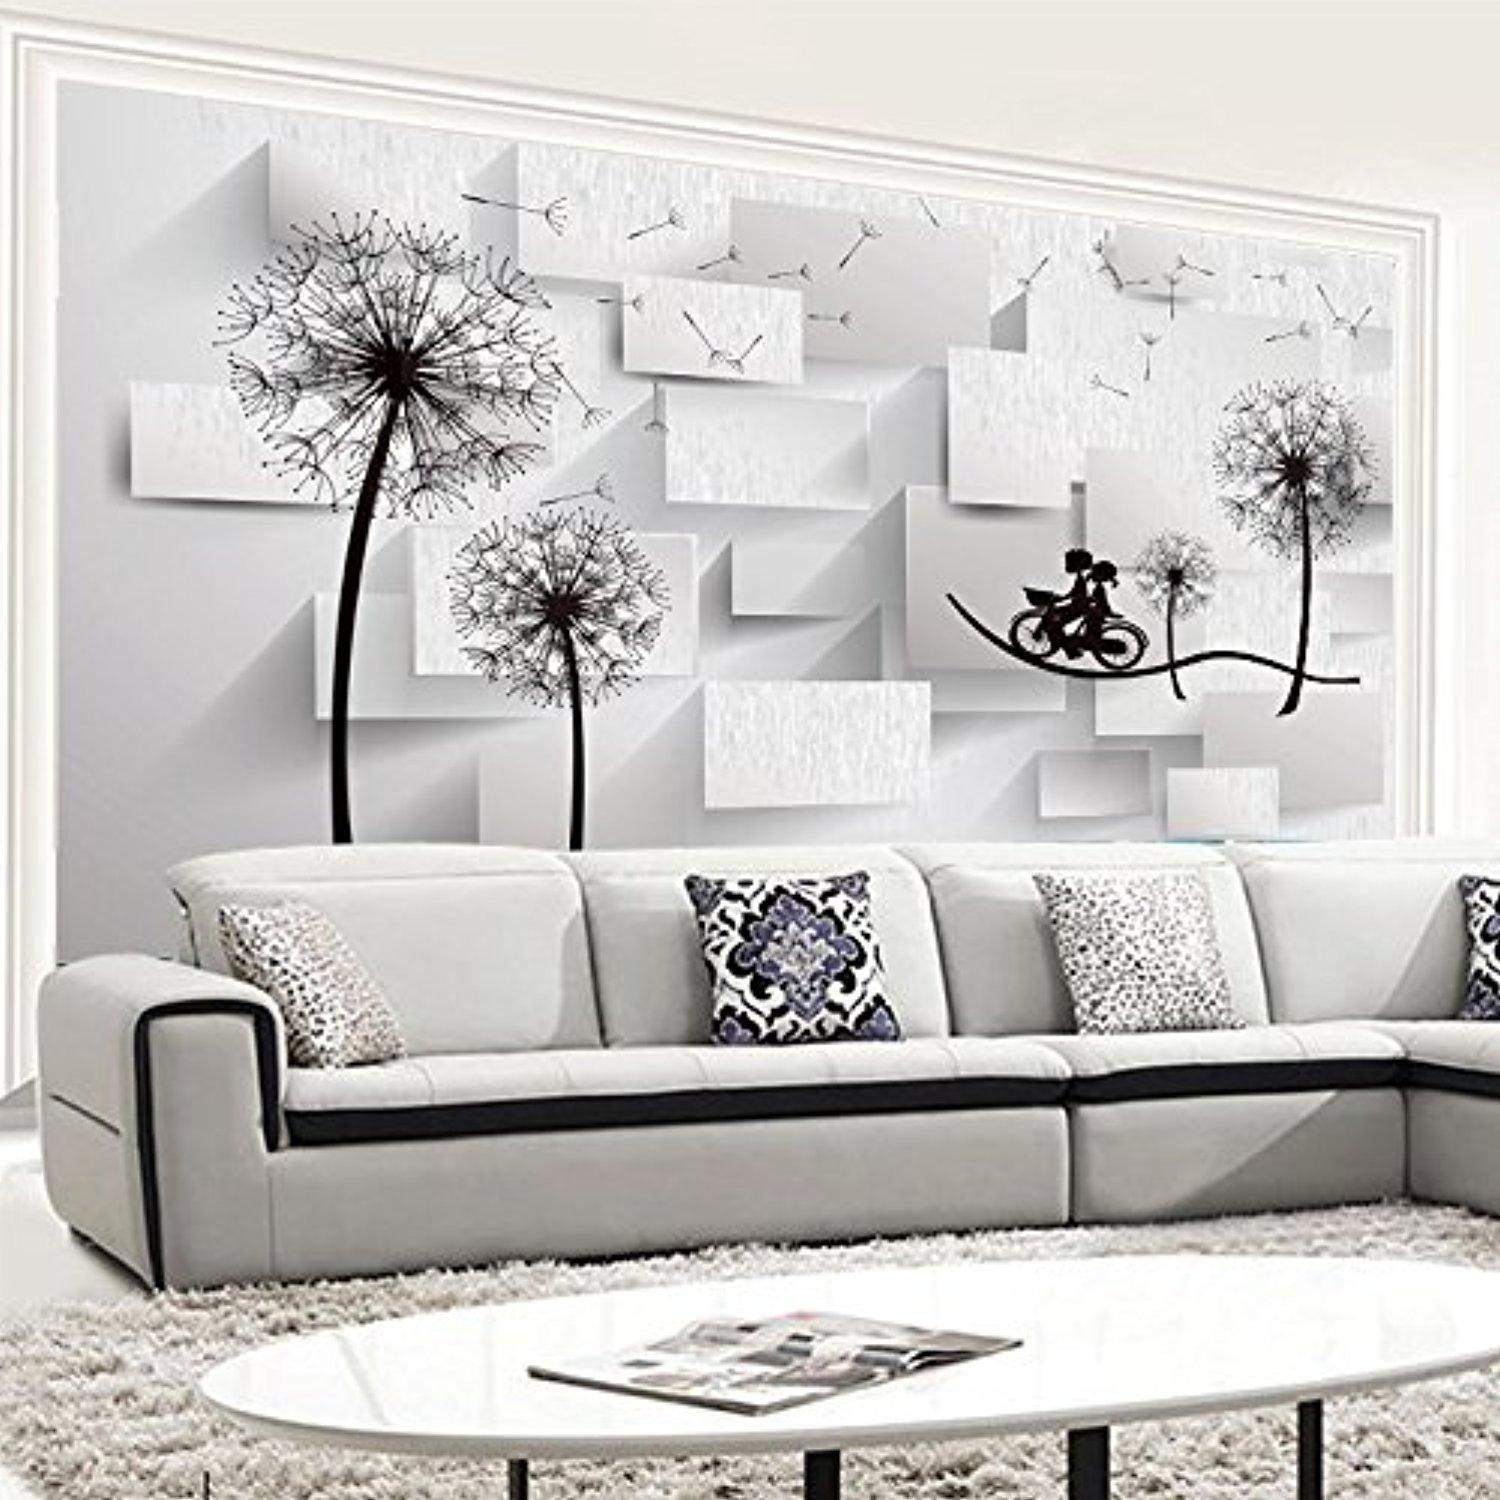 FEI&S TV background wall non-woven wallpaper mural simple and seamless wall covering the living room 3D video wall-papers, Korea paper/non,woven mosaic